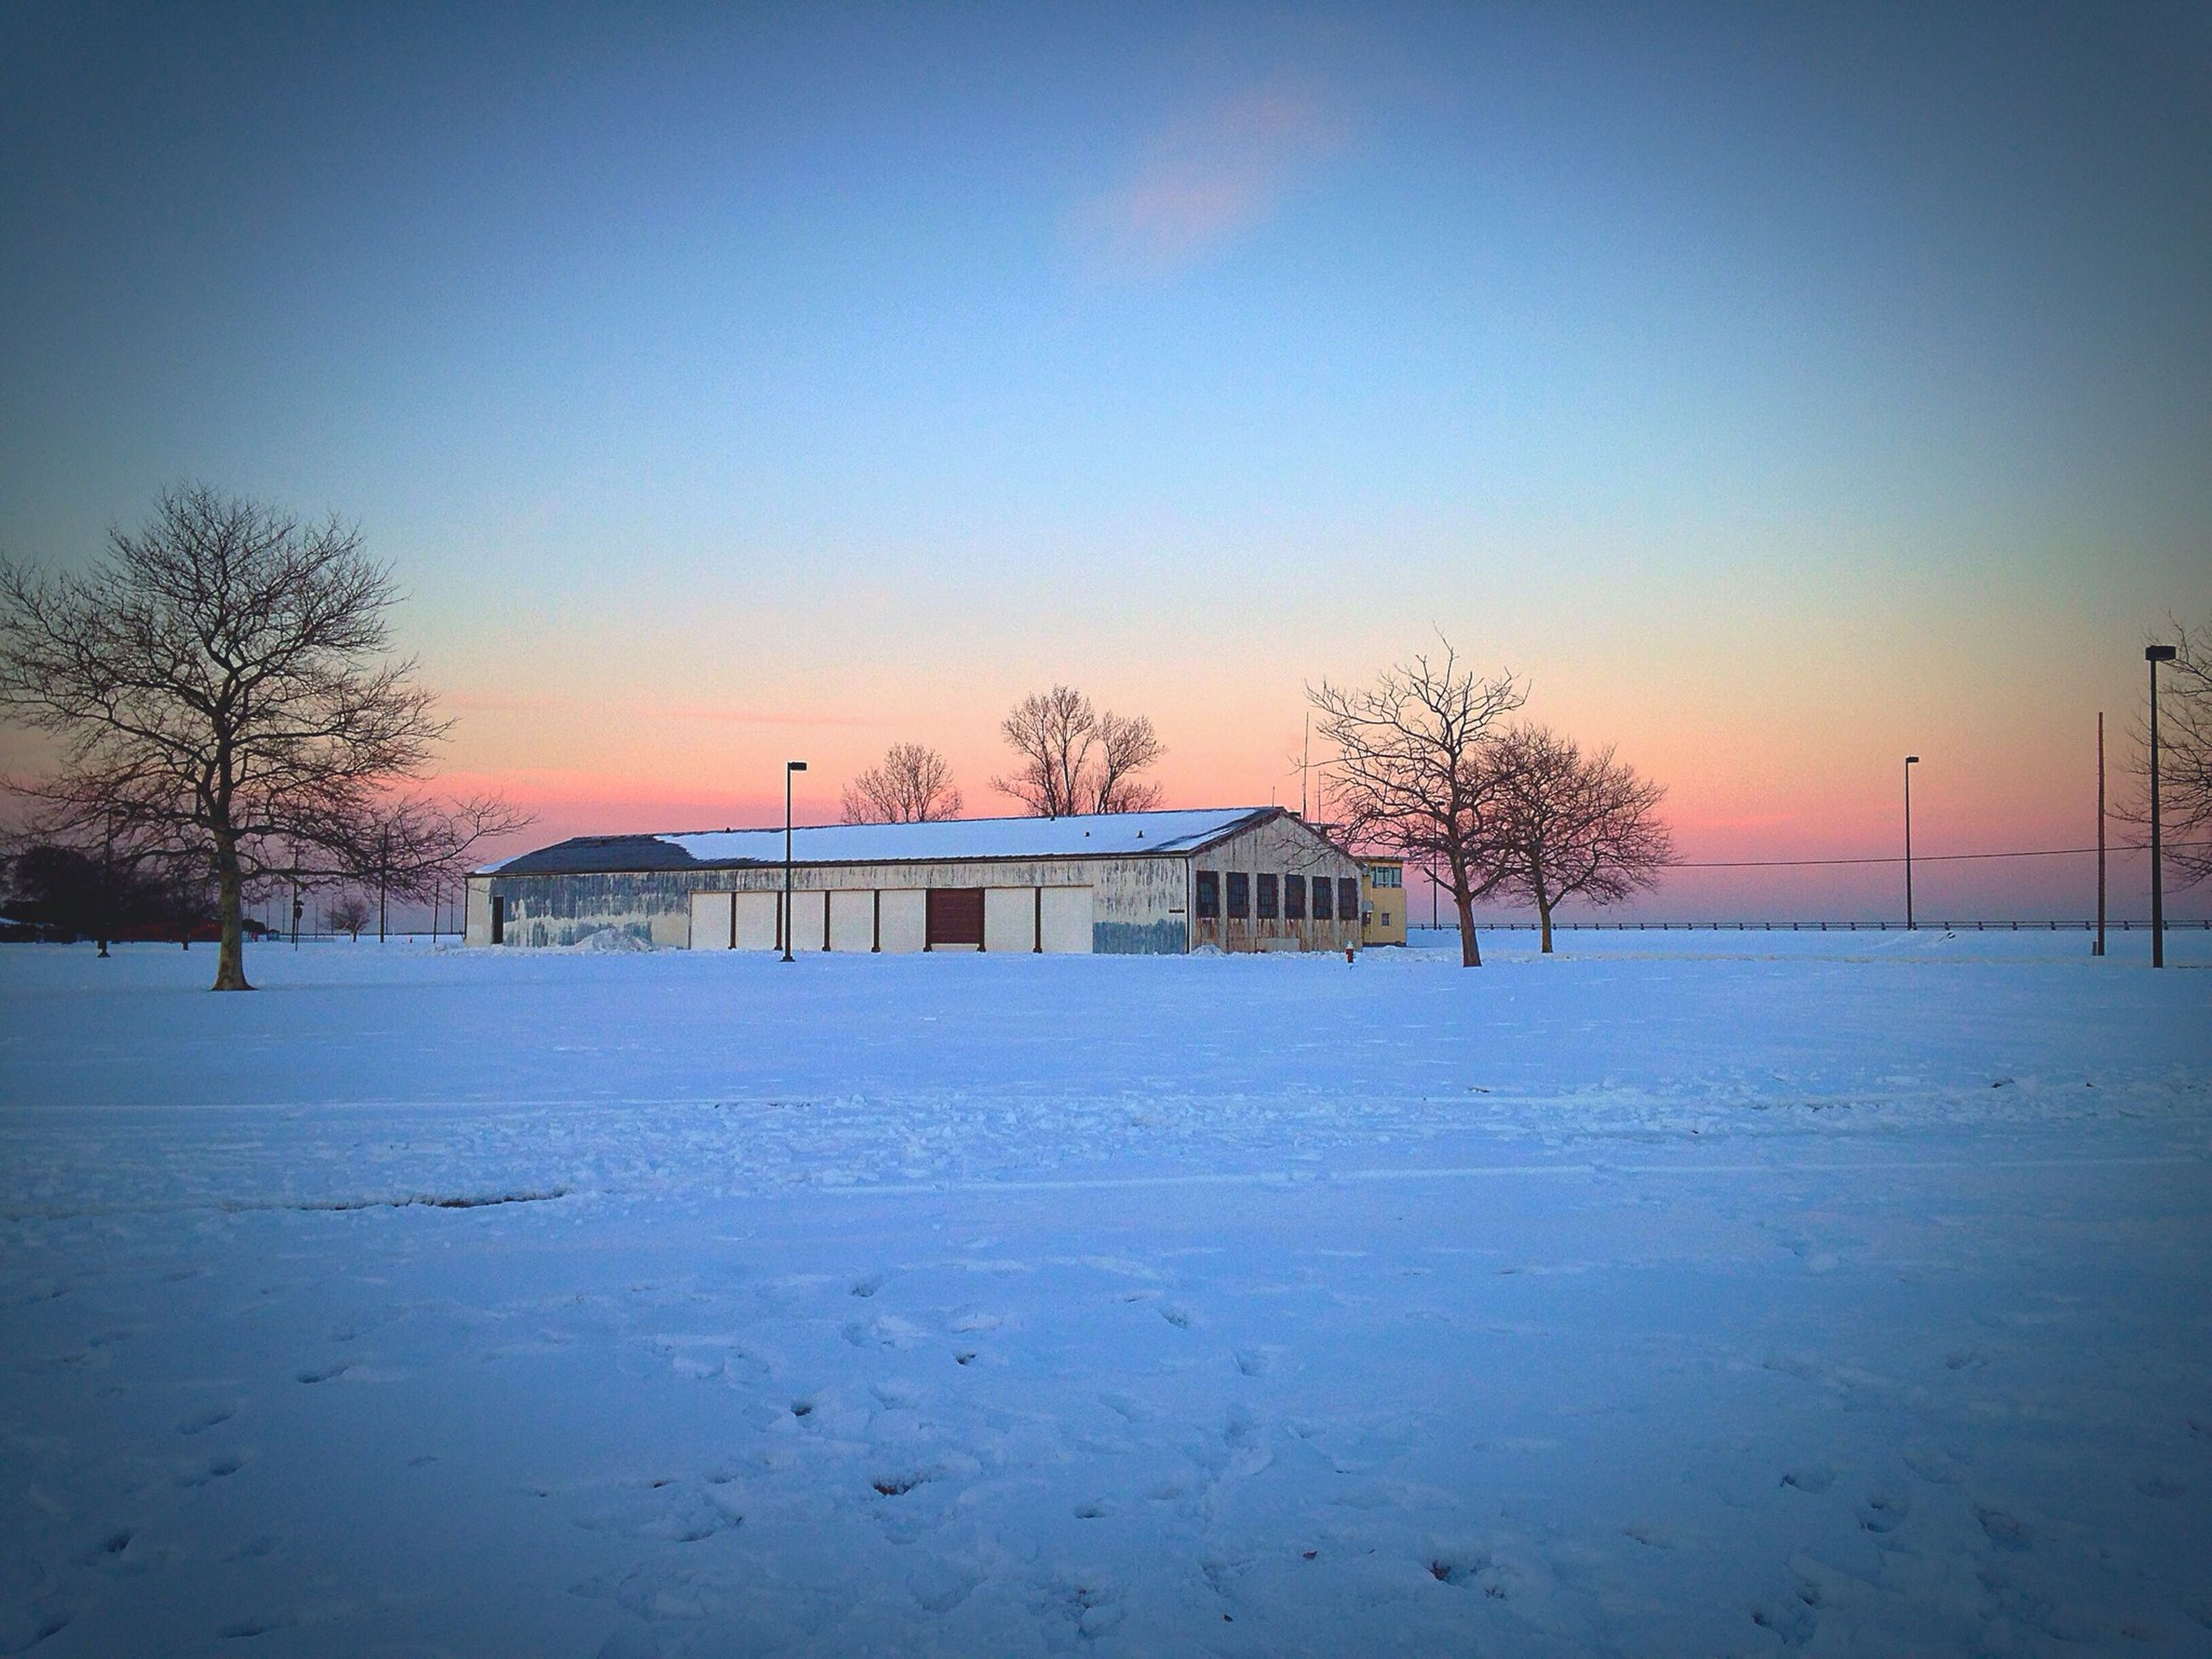 winter, snow, sunset, cold temperature, clear sky, tree, season, copy space, landscape, built structure, house, tranquil scene, tranquility, architecture, field, nature, orange color, weather, bare tree, covering